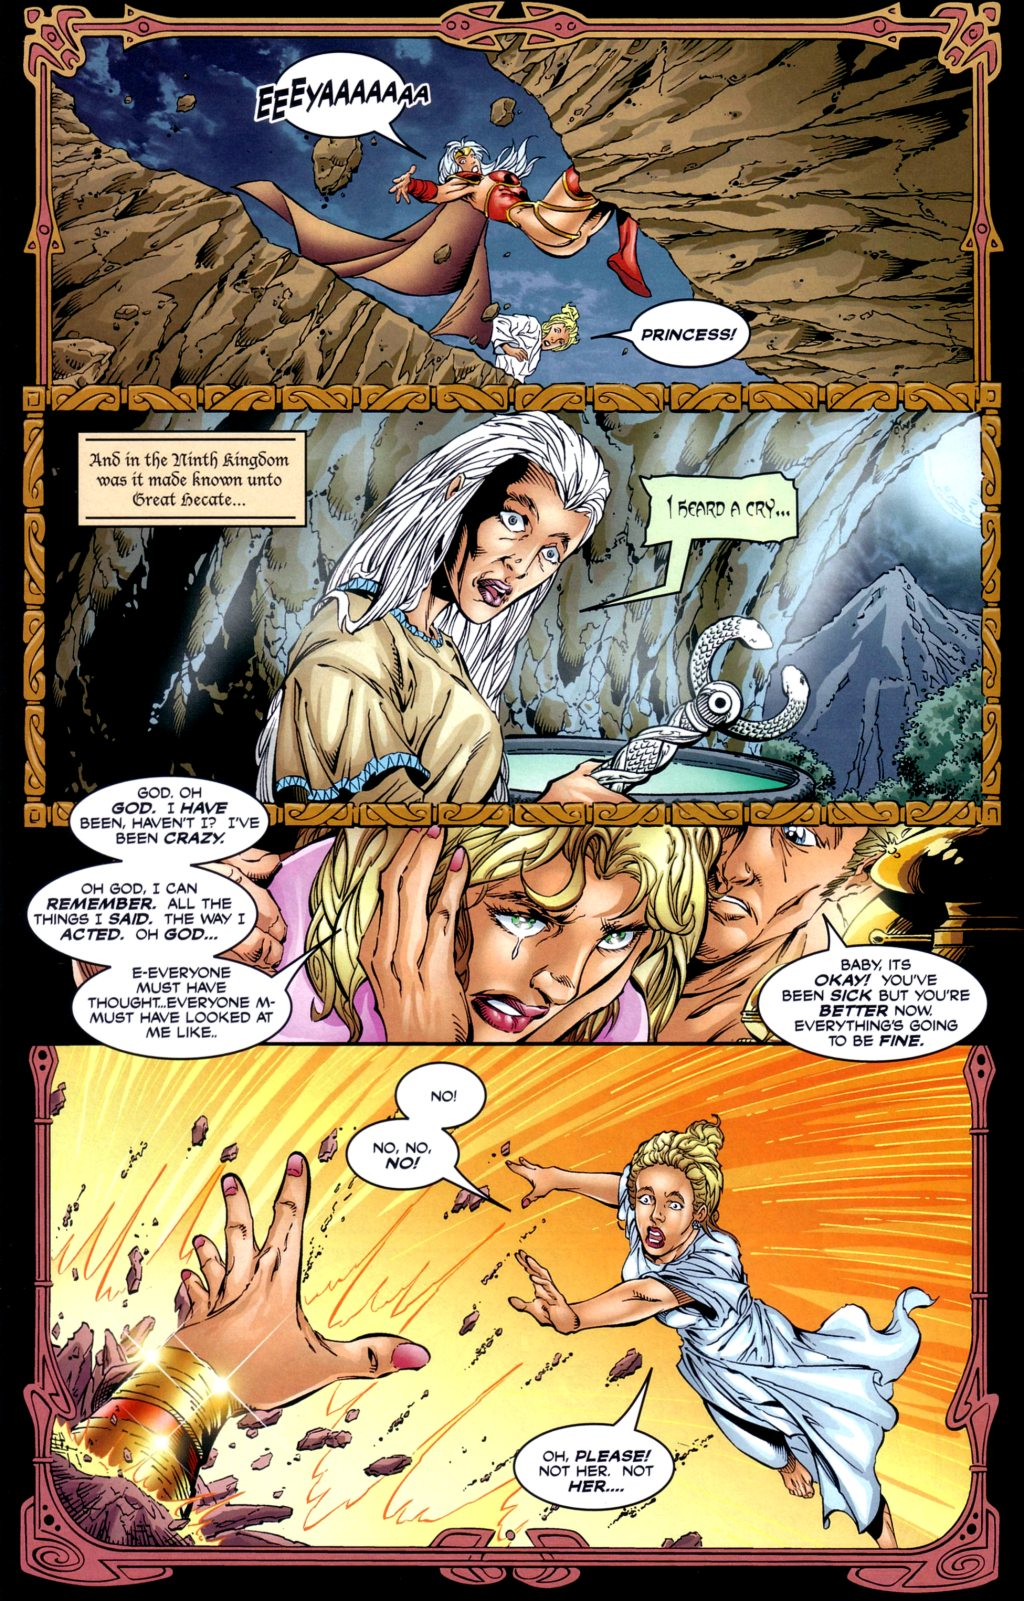 Read online Alan Moore's Glory comic -  Issue #2 - 24